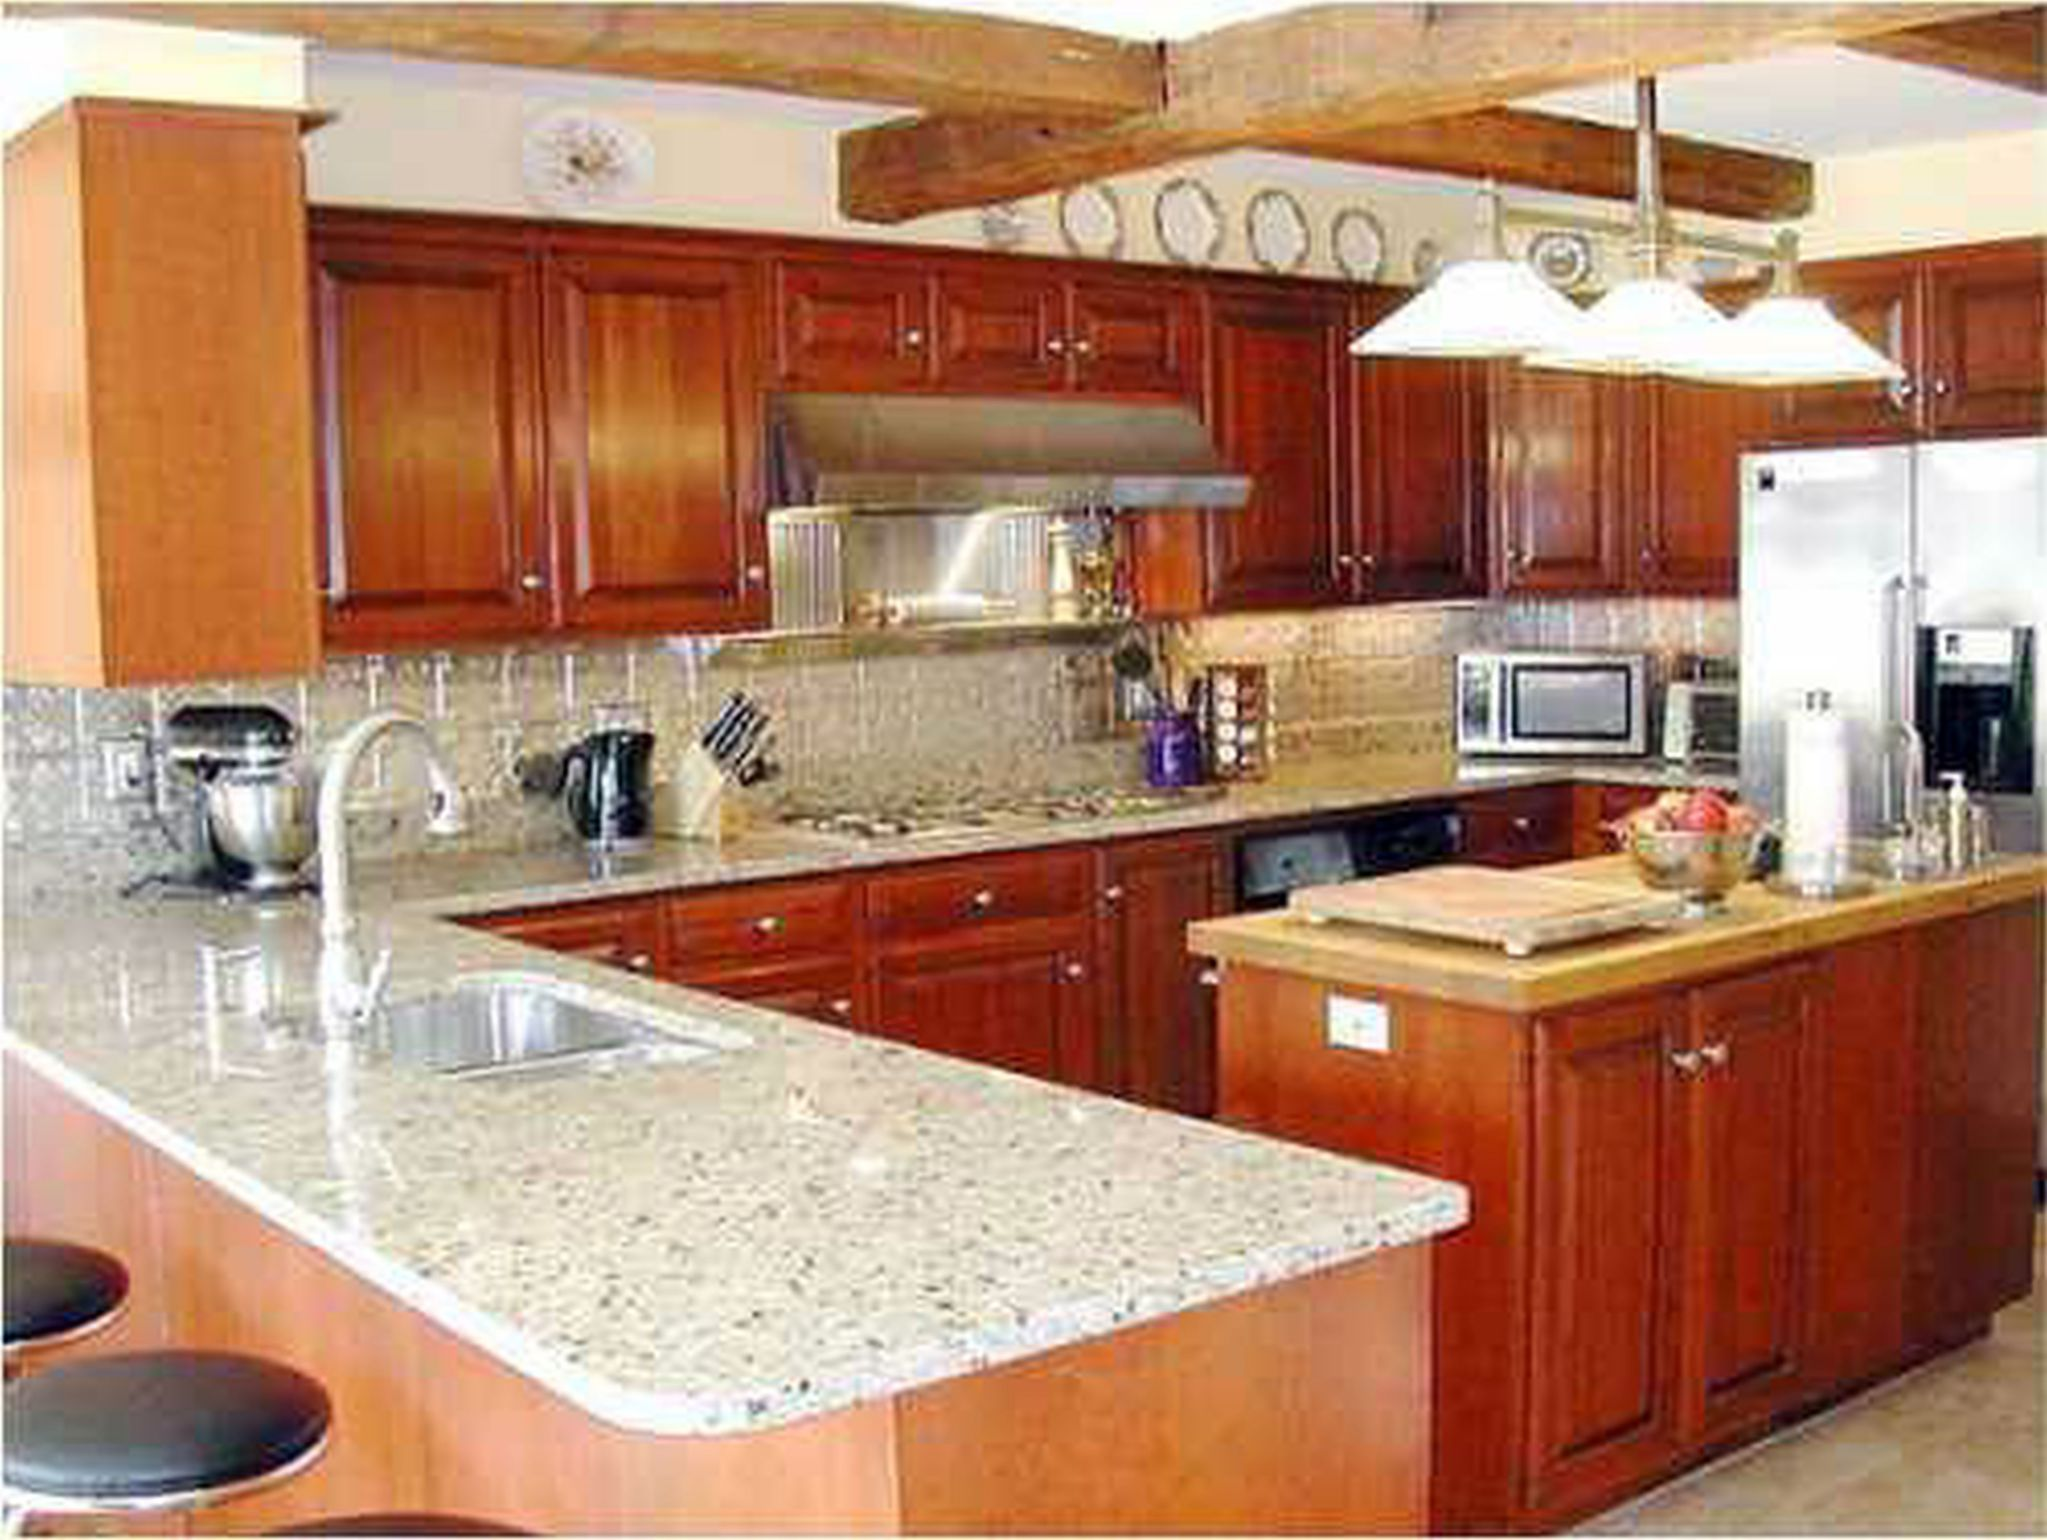 Kitchen counter decor ideas to make your cooking space How to decorate the top of your kitchen cabinets